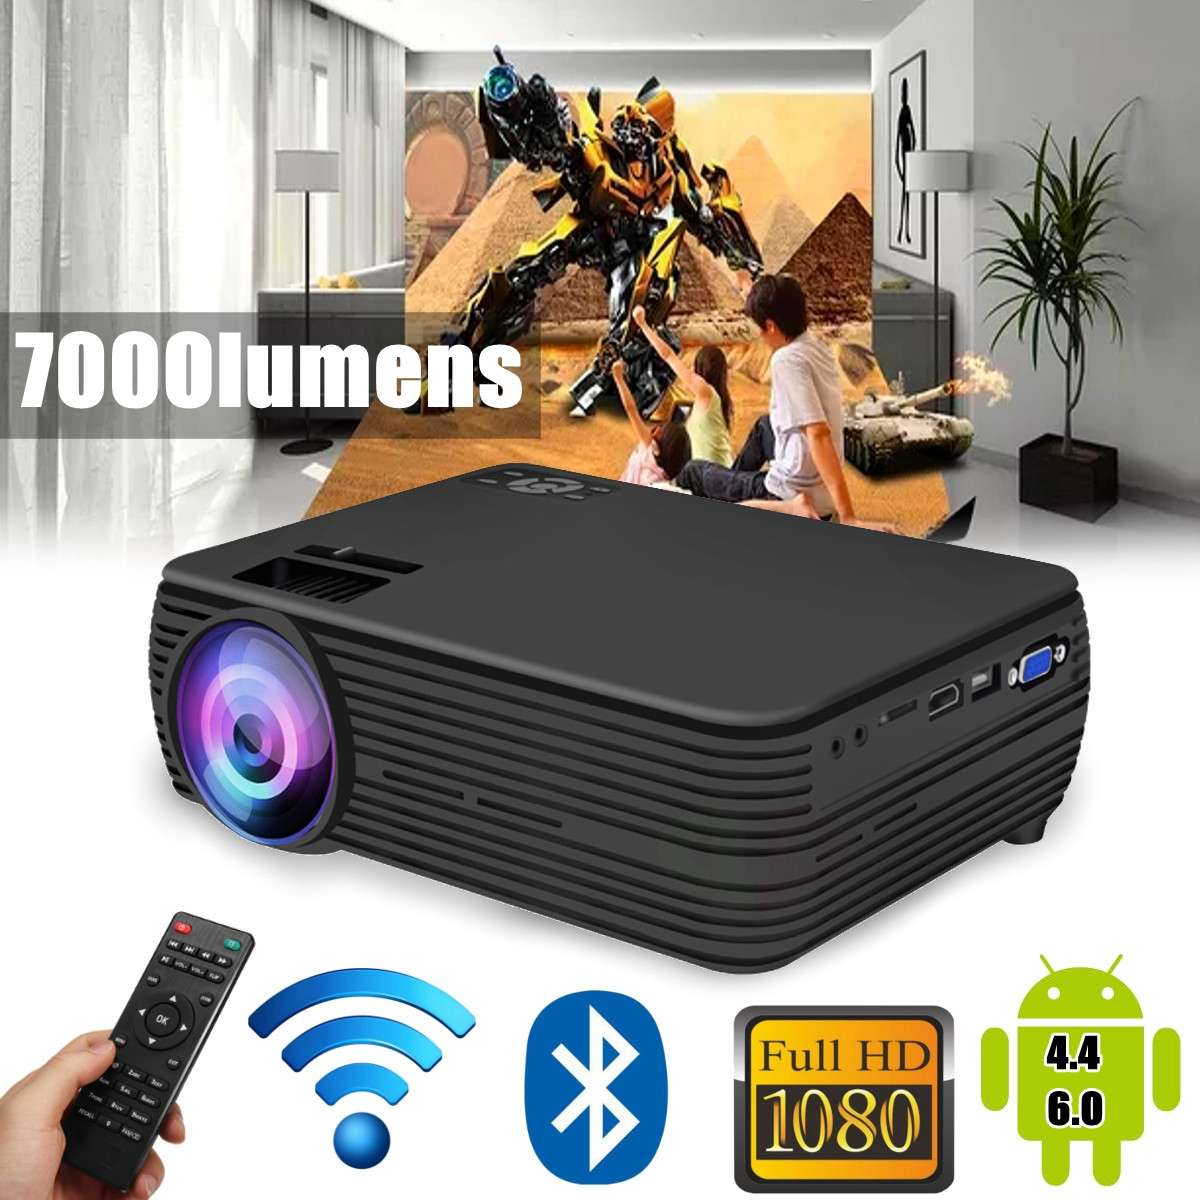 X5 LCD Projector android4.4/6.0 Home Cinema Theater Movie wifi bluetooth LED Proyector HD Projectors AV Support 1080P 7000 LumenX5 LCD Projector android4.4/6.0 Home Cinema Theater Movie wifi bluetooth LED Proyector HD Projectors AV Support 1080P 7000 Lumen